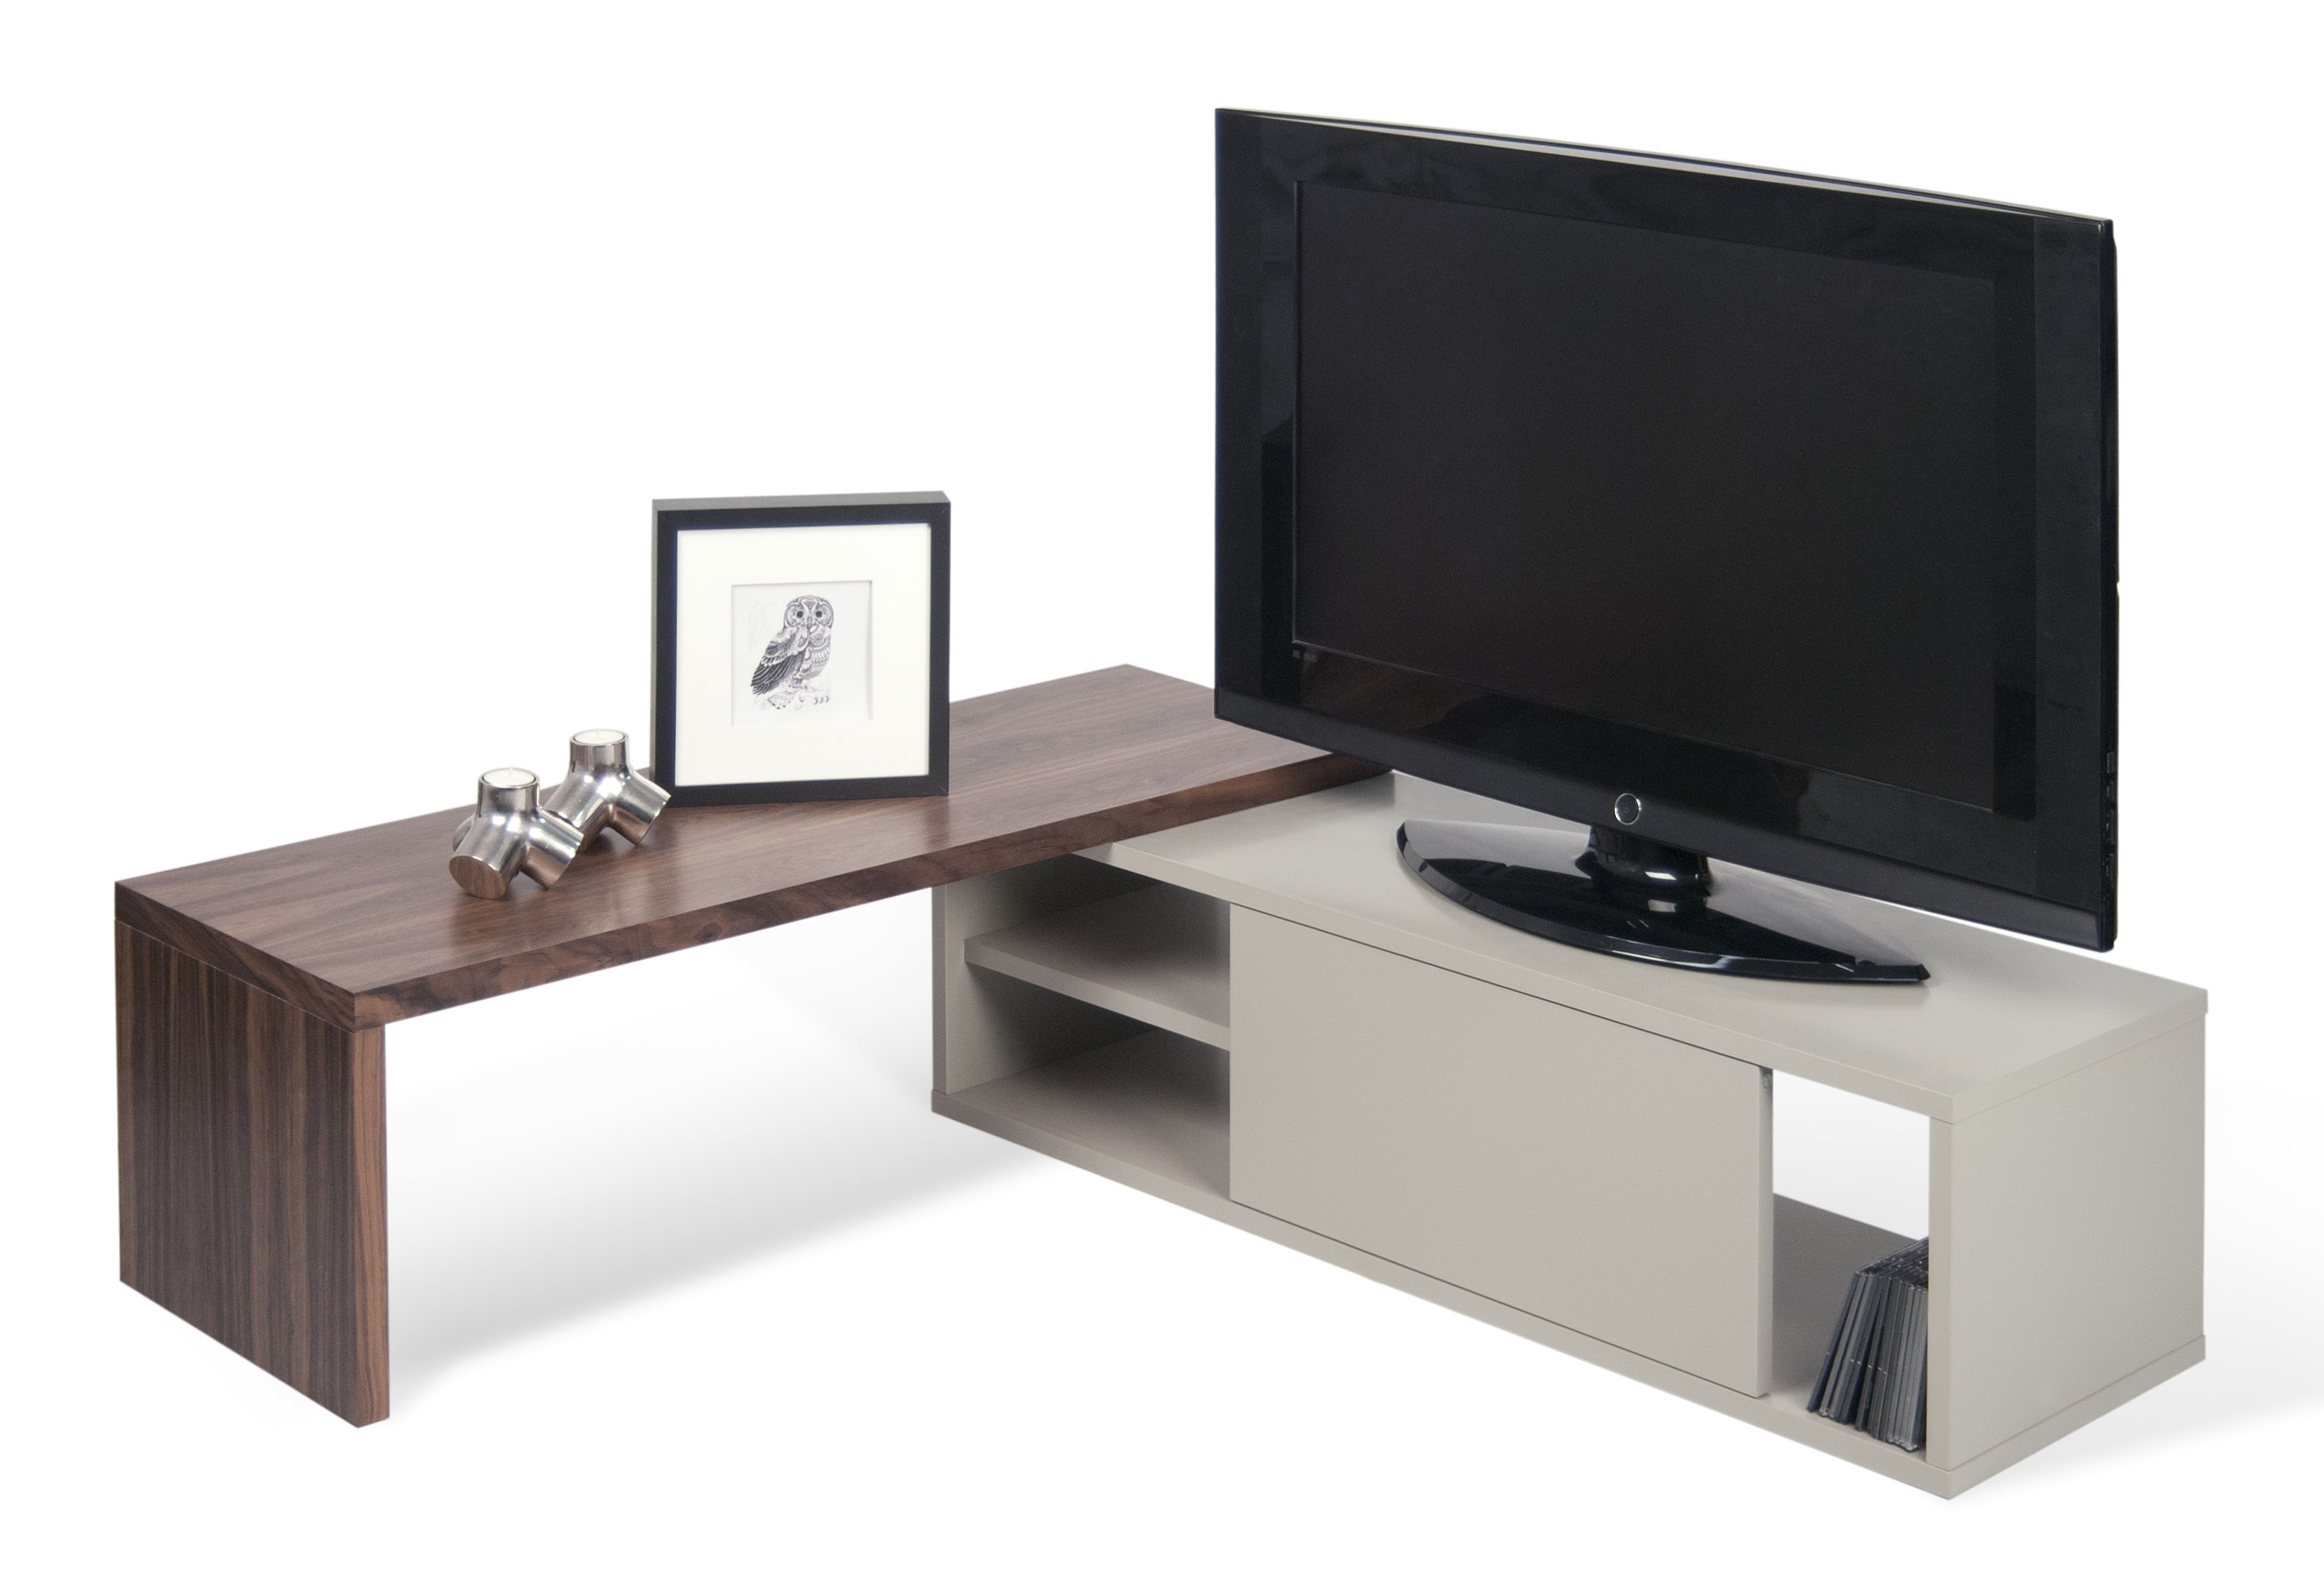 Meuble Tv Extensible Et Pivotant - Meuble Tv Extensible Slide Pivotant L 110 203 Cm Gris [mjhdah]https://media.madeindesign.com/nuxeo/divers/9/4/94cd4253-f62f-44bb-8534-a2722dab1227.jpg